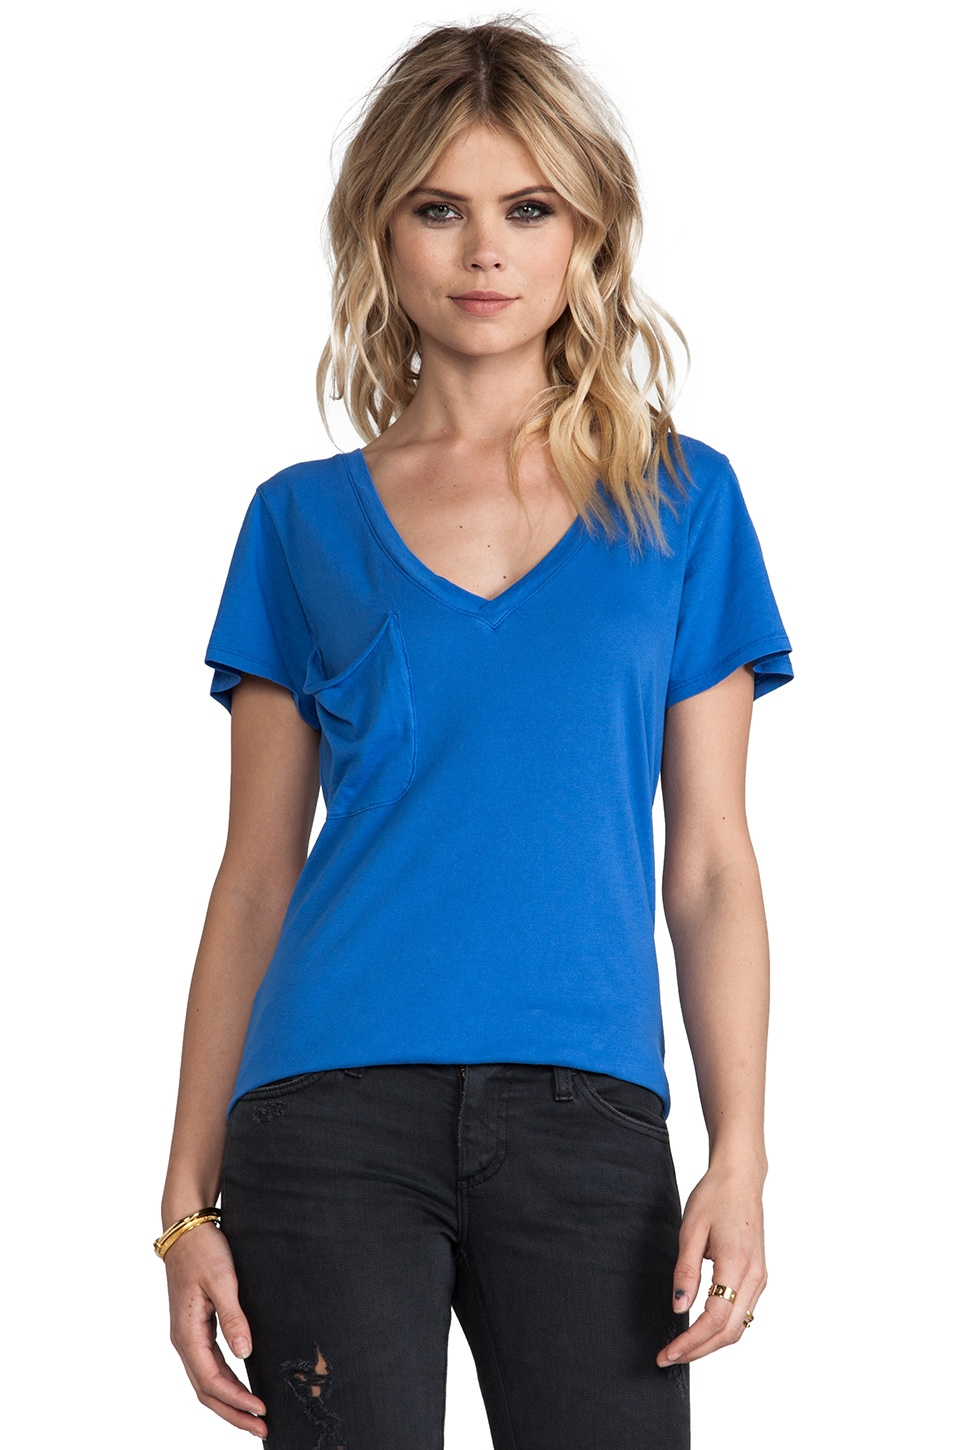 Bobi Light Weight Jersey V Neck Pocket Tee in Nitrogen